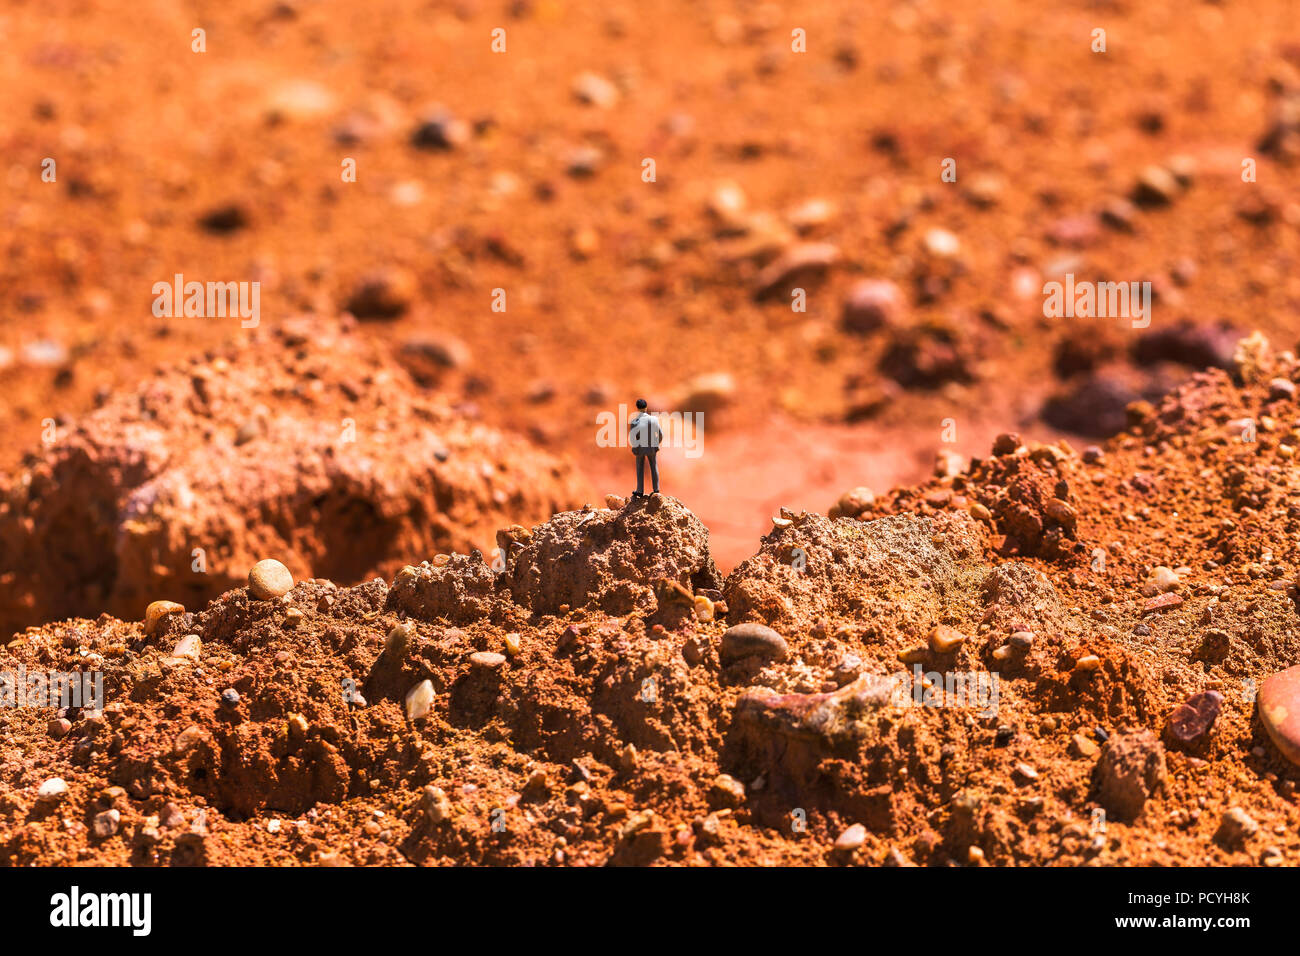 Business man on the rocky area is rocky. Imagine doing business on Mars. - Stock Image